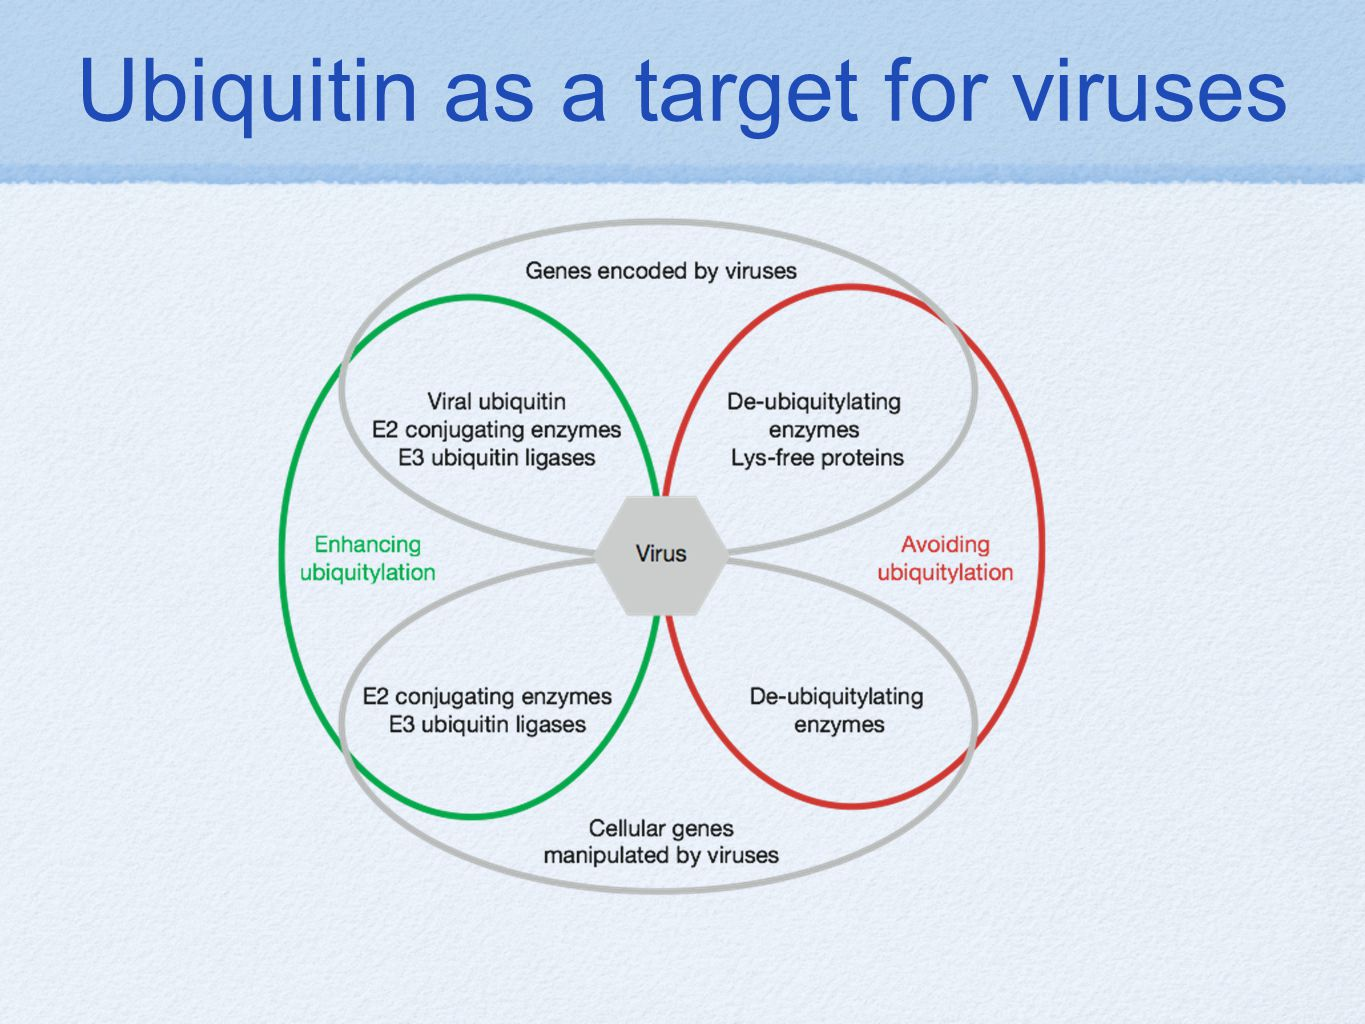 Ubiquitin as a target for viruses